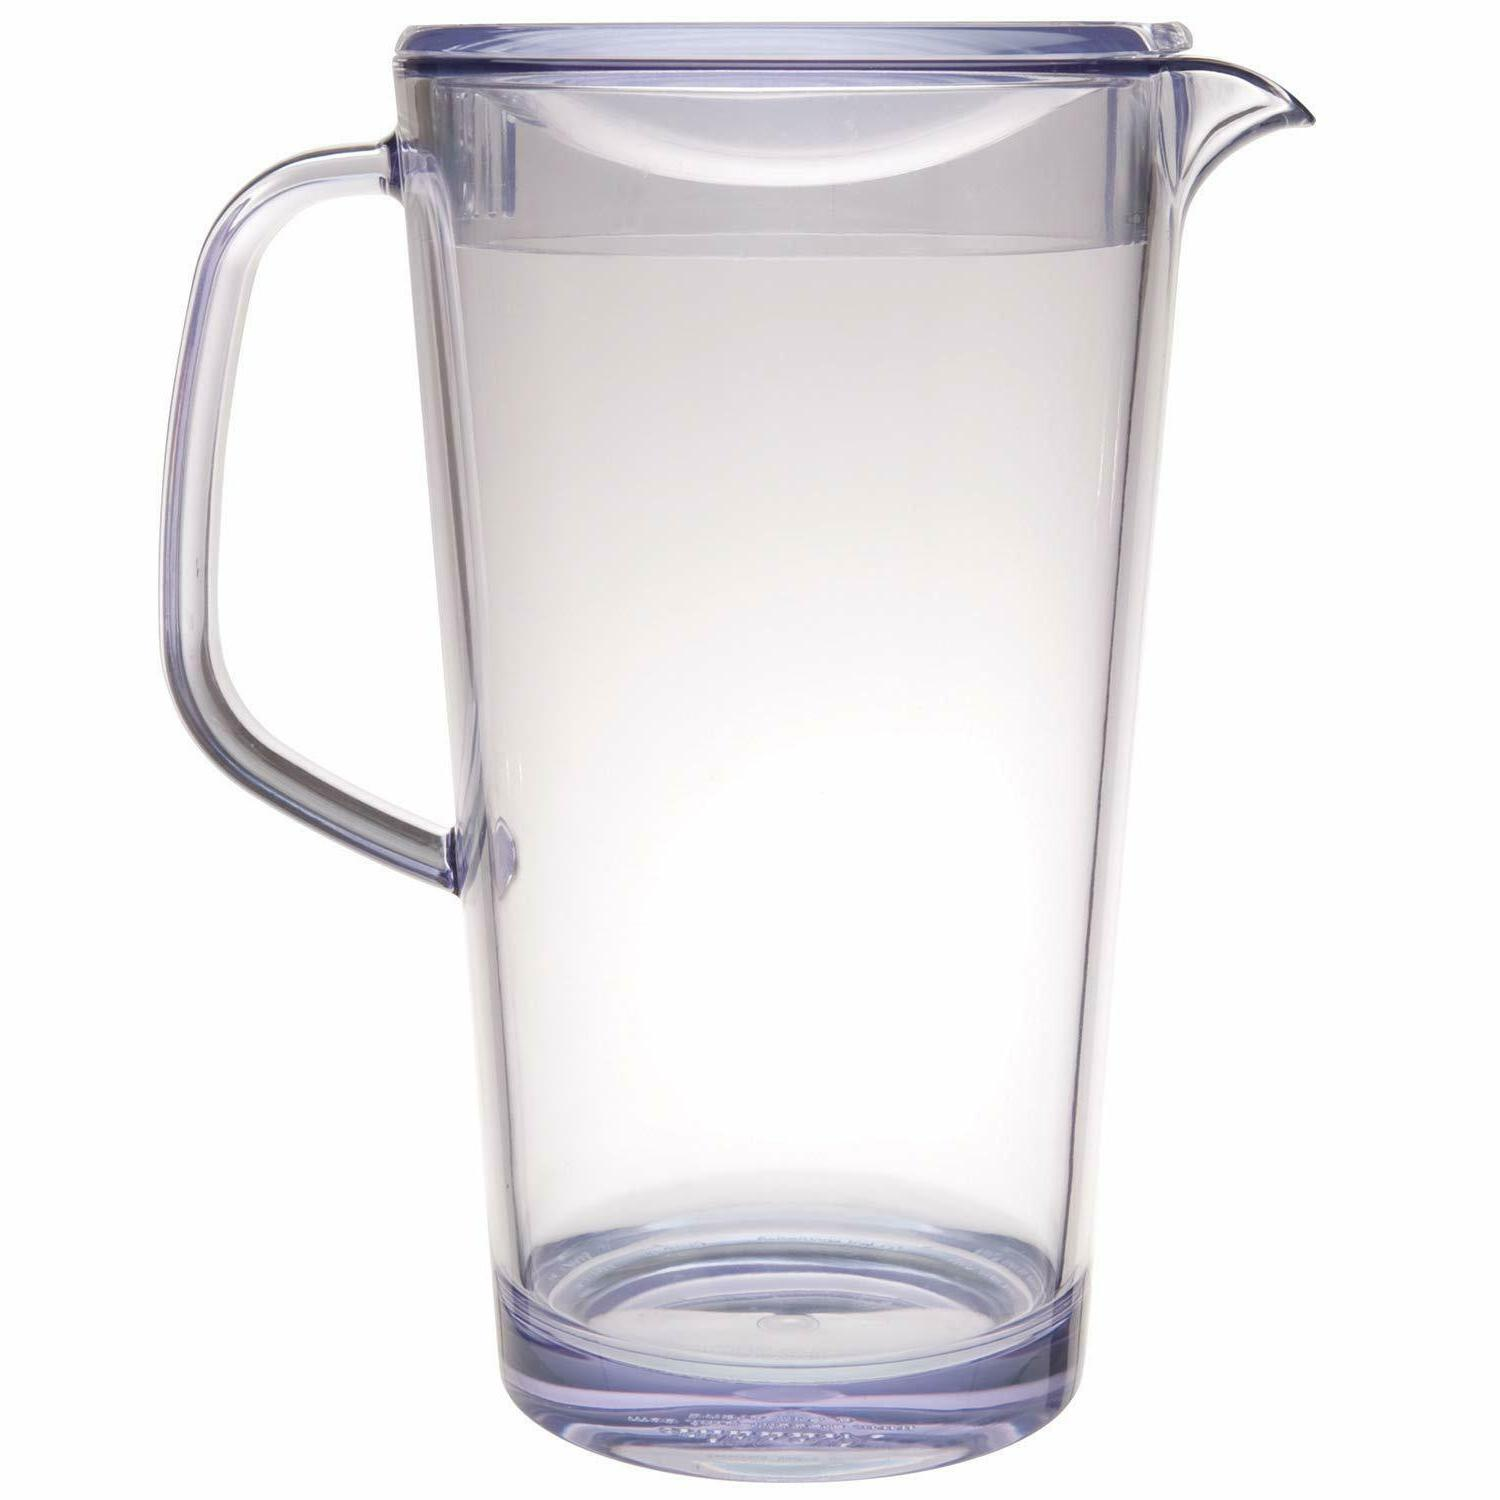 Pitcher with Lid Beverage Ice Tea Carafe Juice Clear